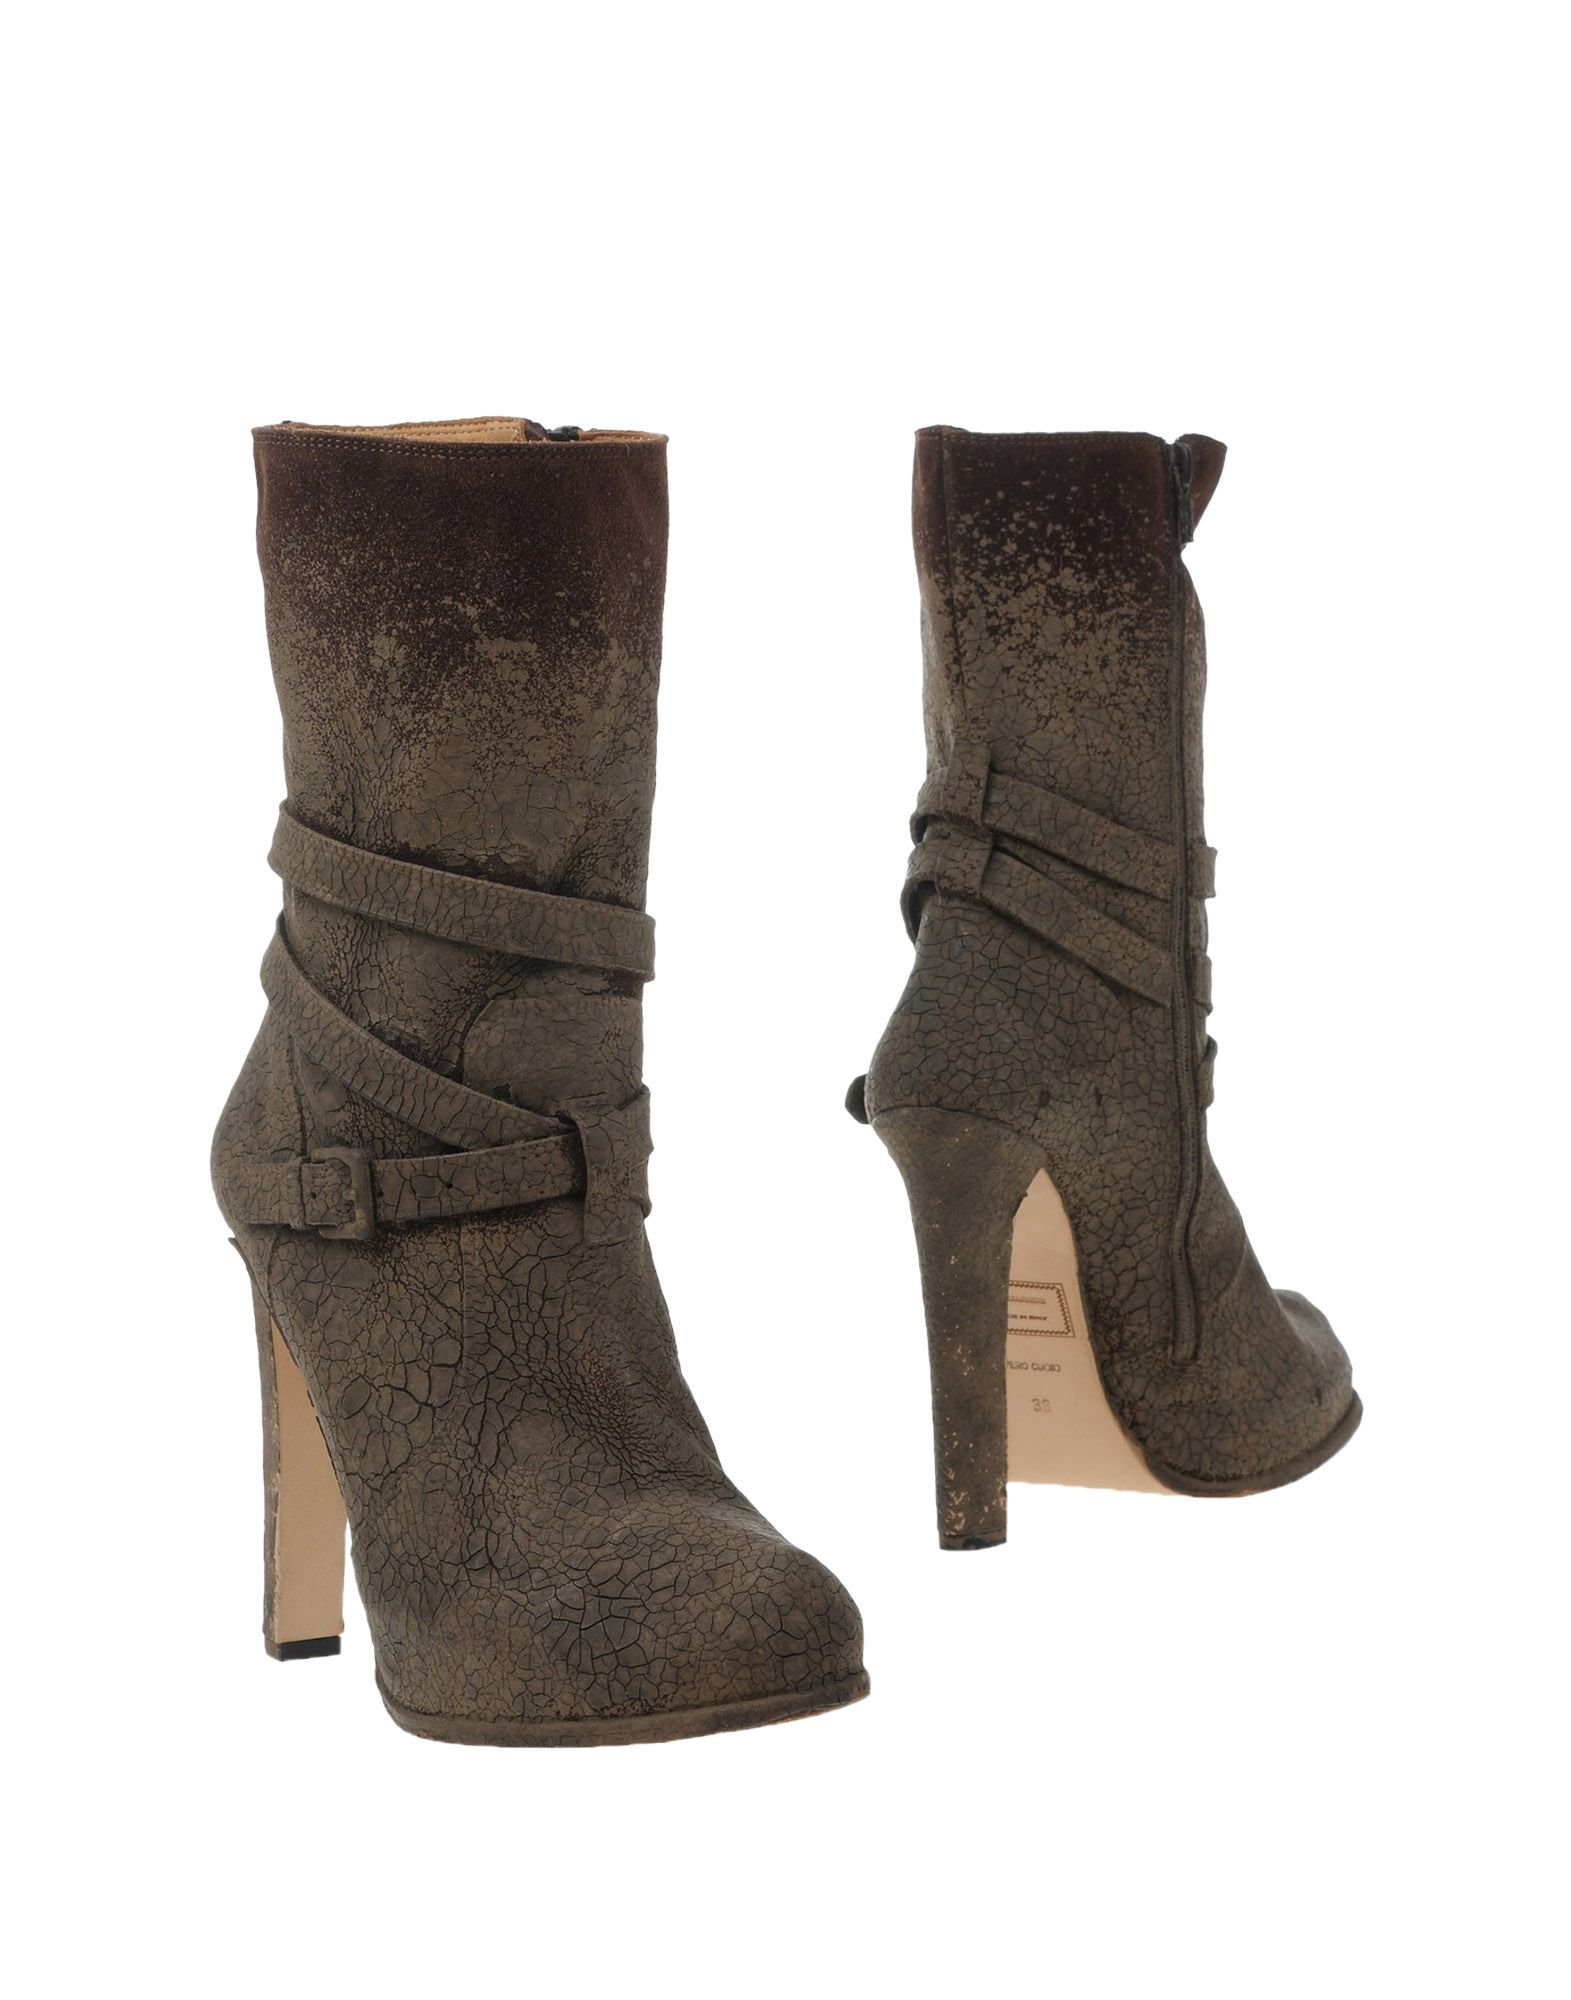 Dsquared2 Ankle Boot - Women Dsquared2 Ankle Boots - online on  Australia - Boots 11064861UD 0be0d2